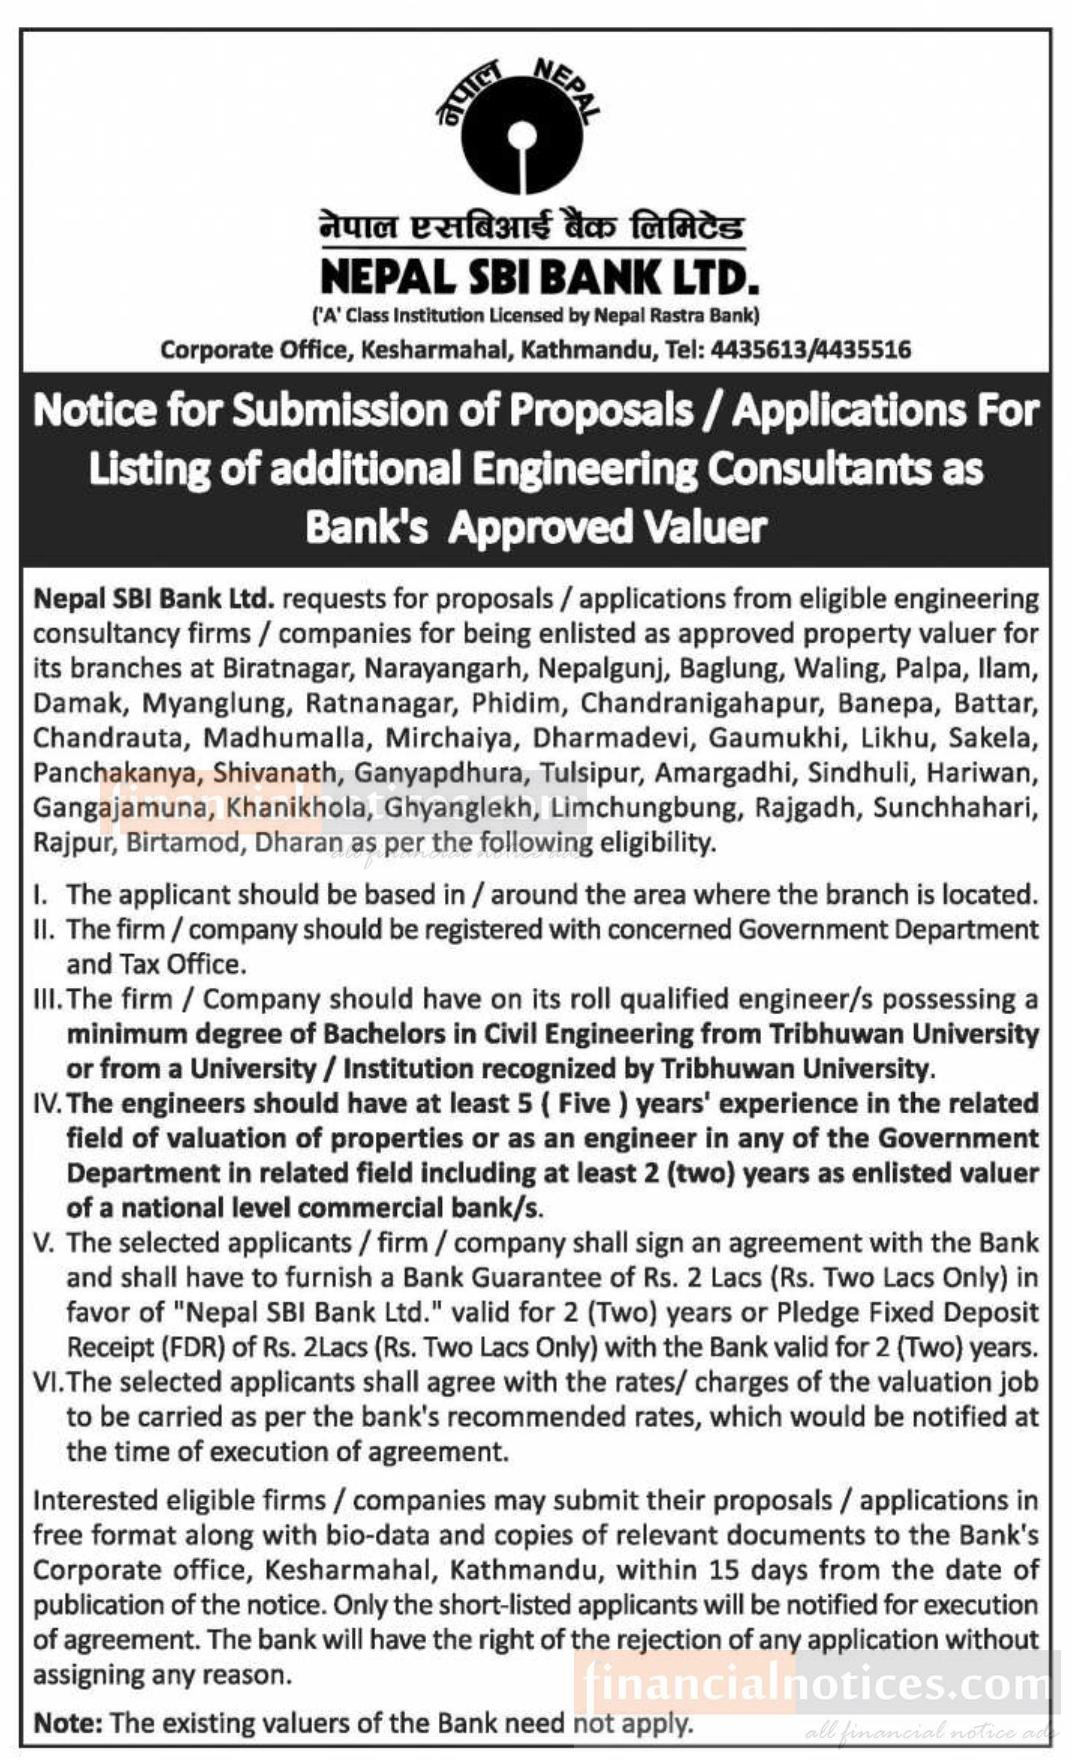 Notice for Submission of Proposal